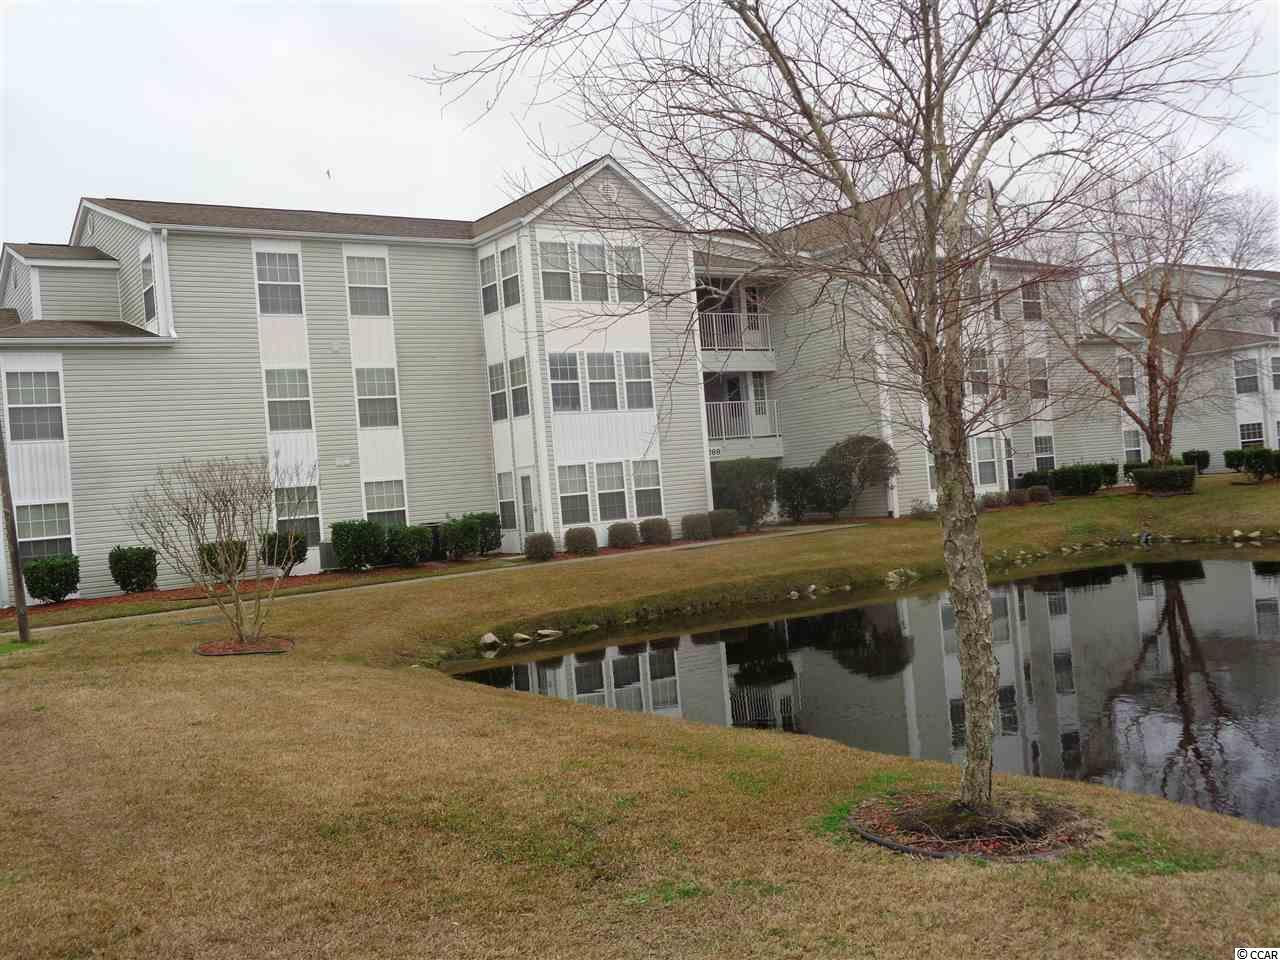 Beautiful, move in-ready and fully furnished 2 bedroom/ 2 bath unit in well maintained community of Southbridge. This condo has been used as a vacation home. There is a sun room adjacent to the great room which offers a view of the pond. The spacious great room features vaulted ceiling.  The master bed room has a walk in closet. The refrigerator and garbage disposal are new. There is a transferable home warranty which is renewable in May 2020. Surfside Beach and pier is is approximately 1.5 miles away.  The airport, Coastal Grand Mall, Broadway at the Beach, and Market Common are all just minutes away. The community offers a pool, club house, and recreation area. This unit can be a great vacation home or primary residence. Square footage approximate and not guaranteed. Buyer is responsible for verification.